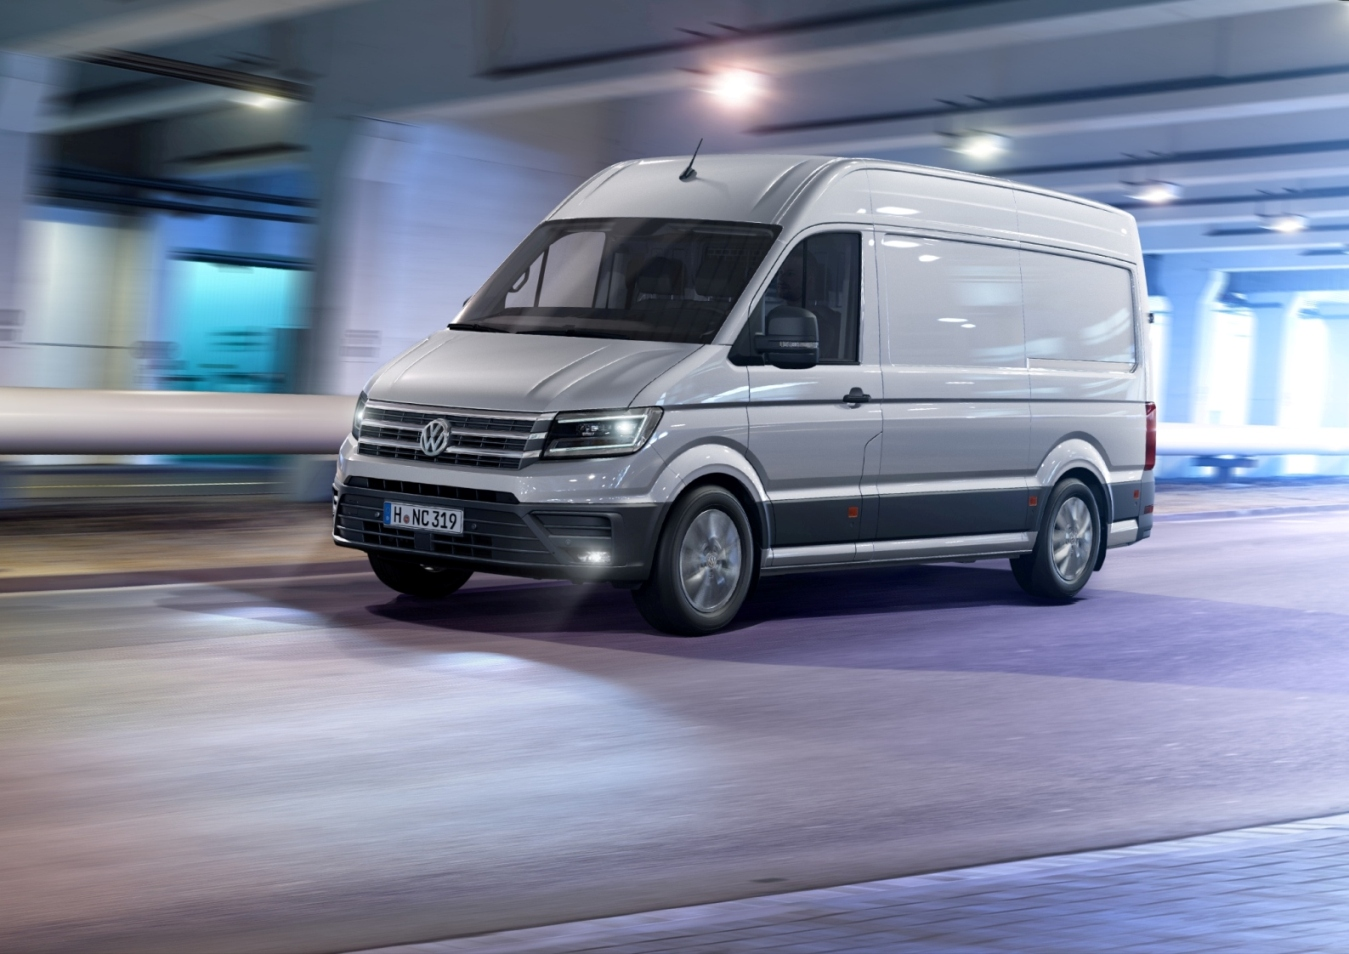 new 2017 volkswagen crafter debuts with fwd option us market entry possible autoevolution. Black Bedroom Furniture Sets. Home Design Ideas